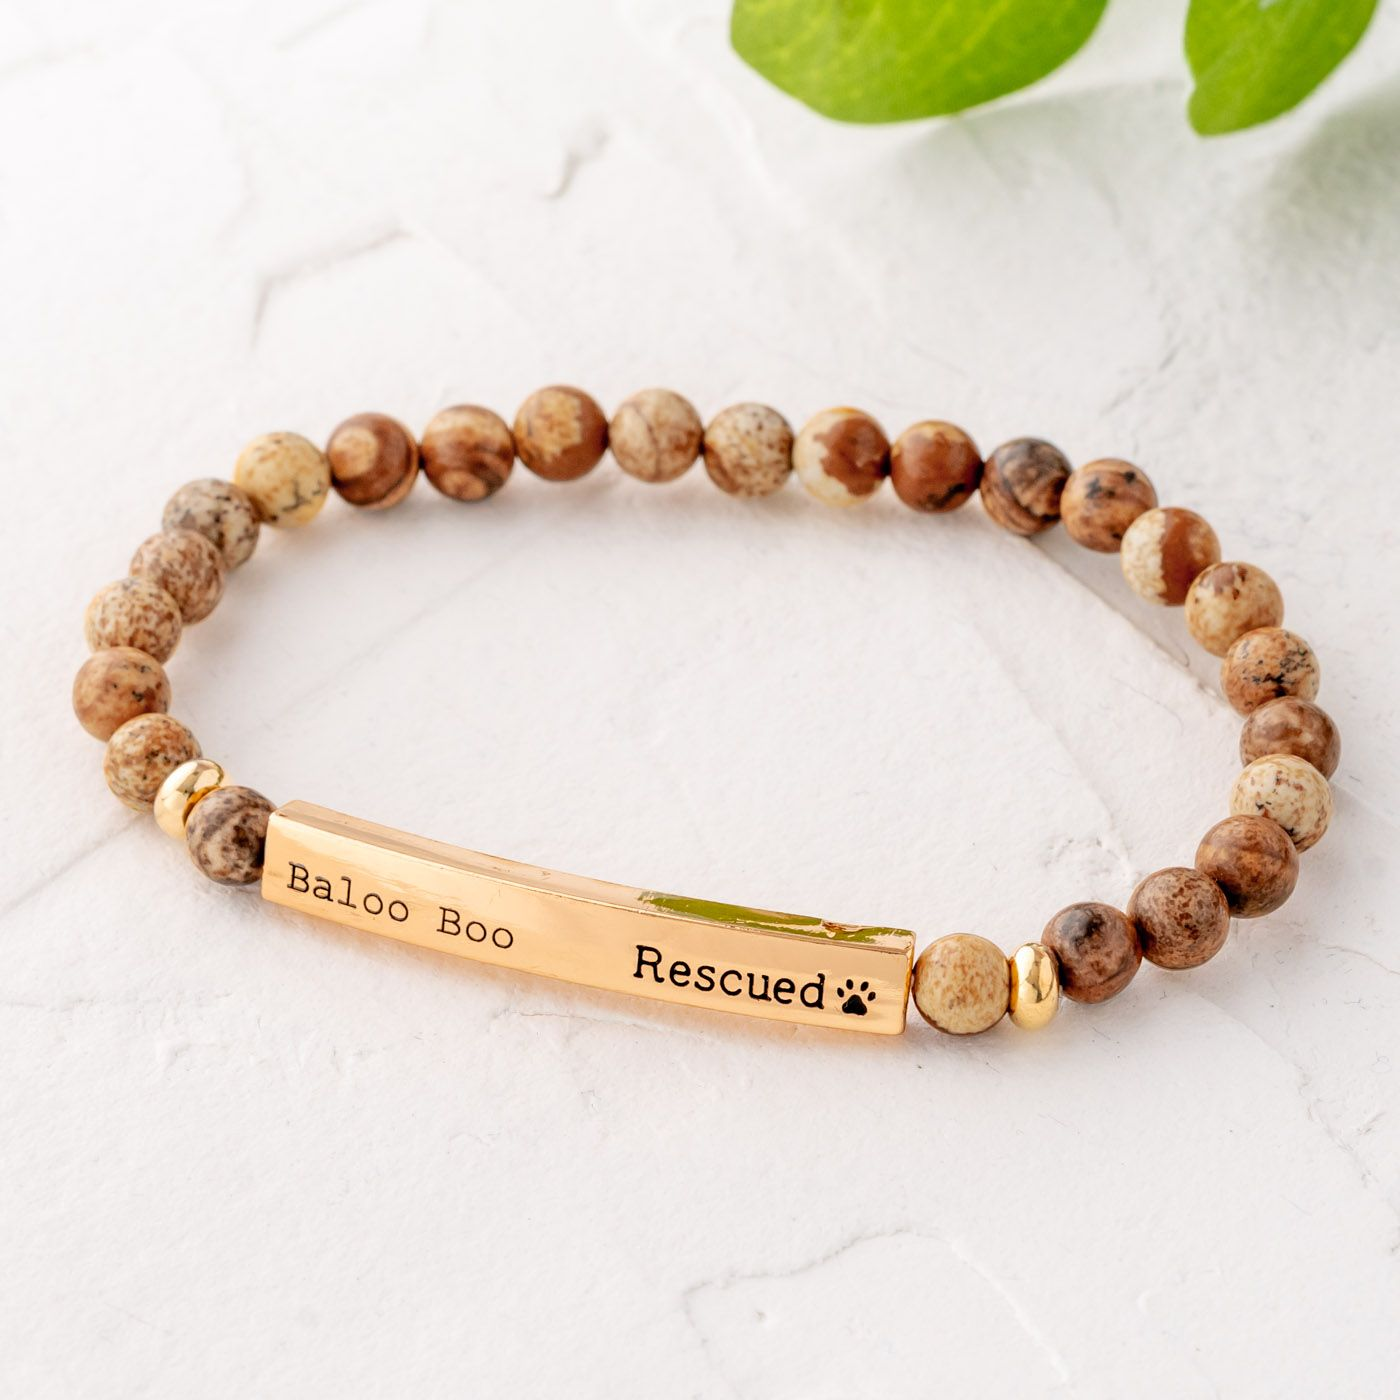 Paws & Reflect 'Rescued' Bracelet